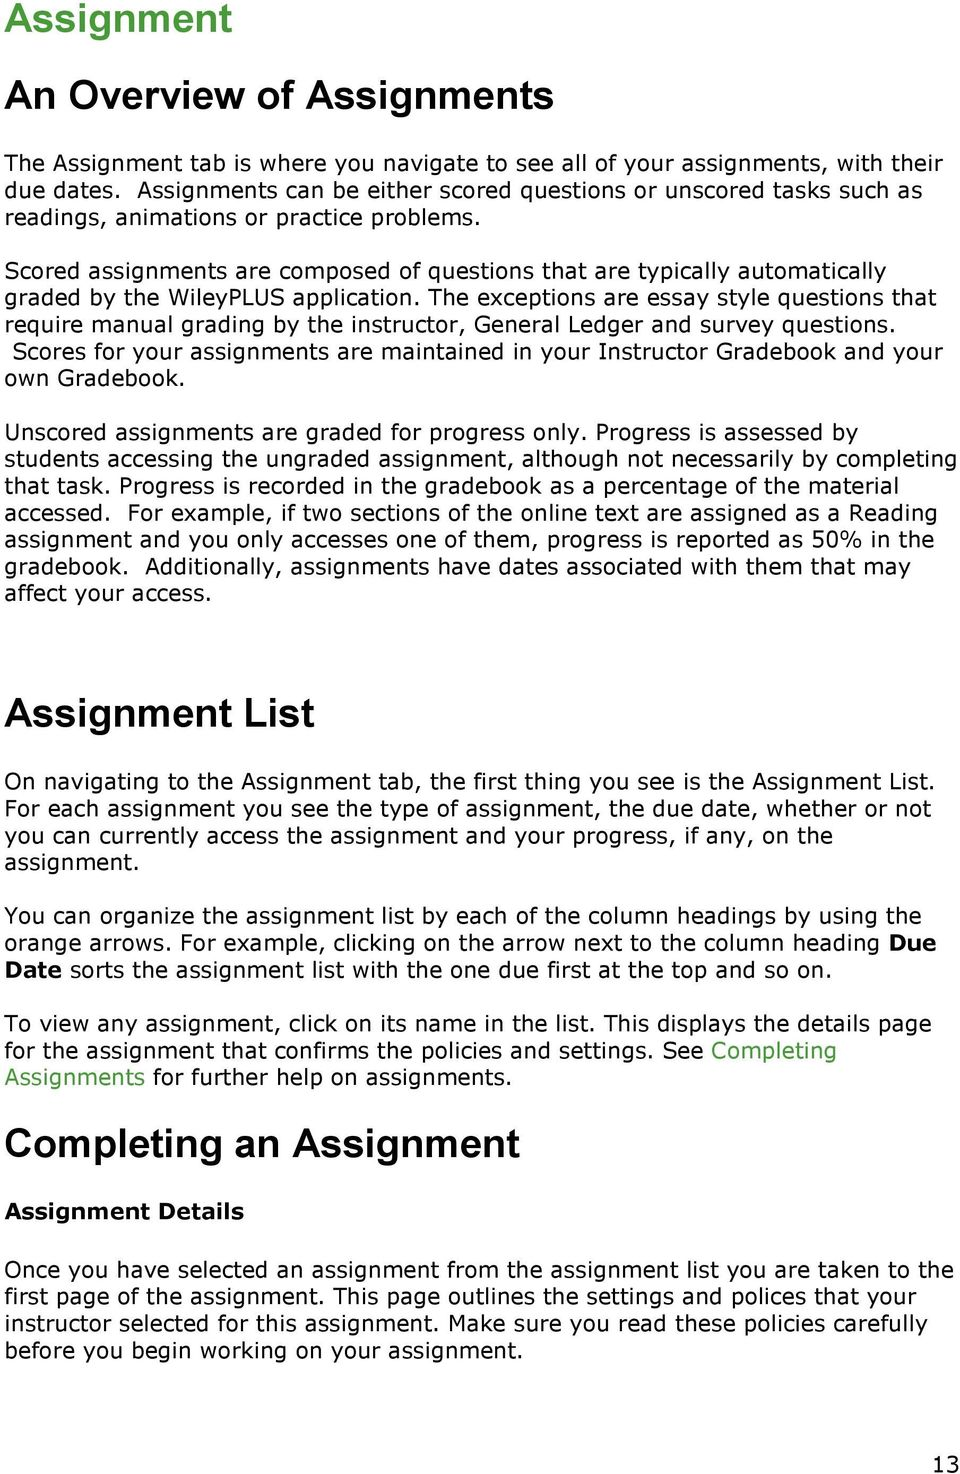 Wiley plus student user guide pdf scored assignments are composed of questions that are typically automatically graded by the wileyplus application fandeluxe Choice Image